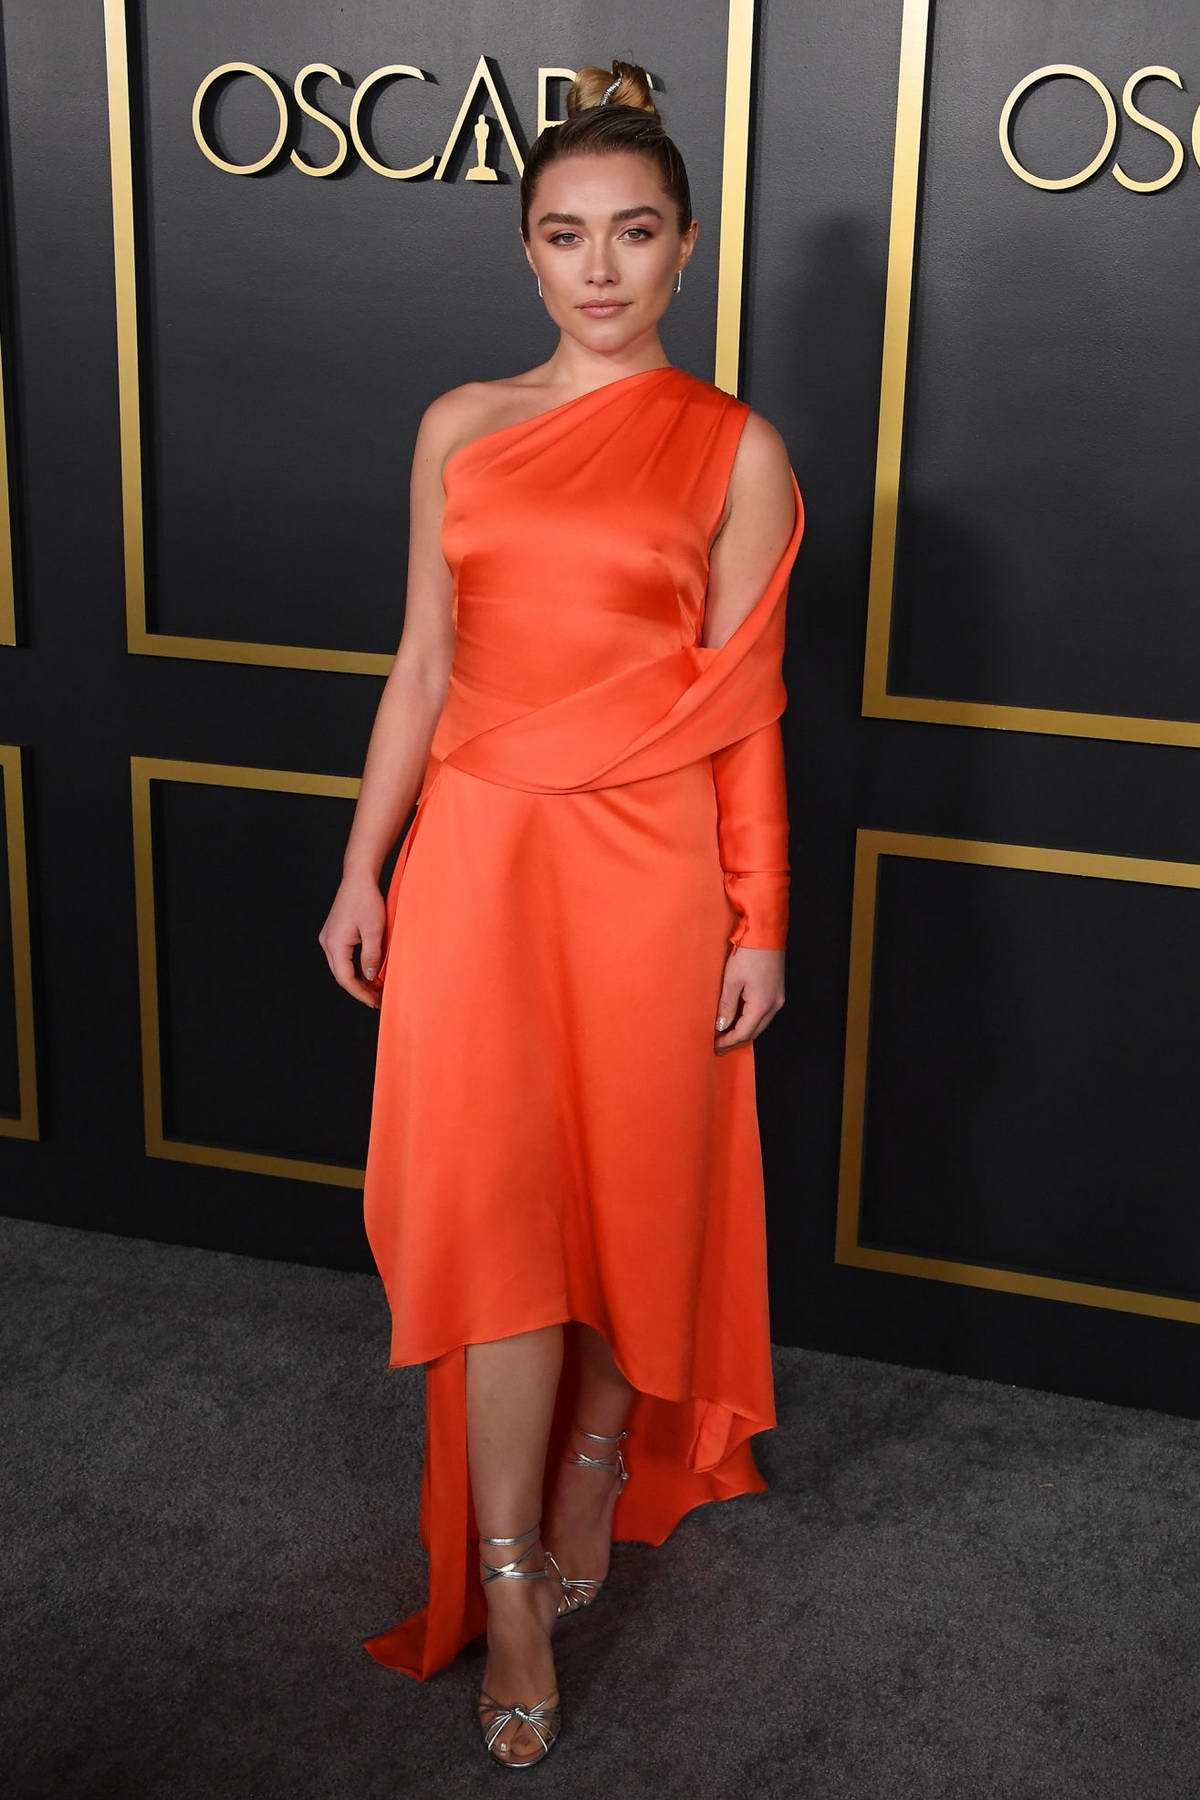 Florence Pugh attends the 92nd Oscars Nominees Luncheon in Hollywood, California